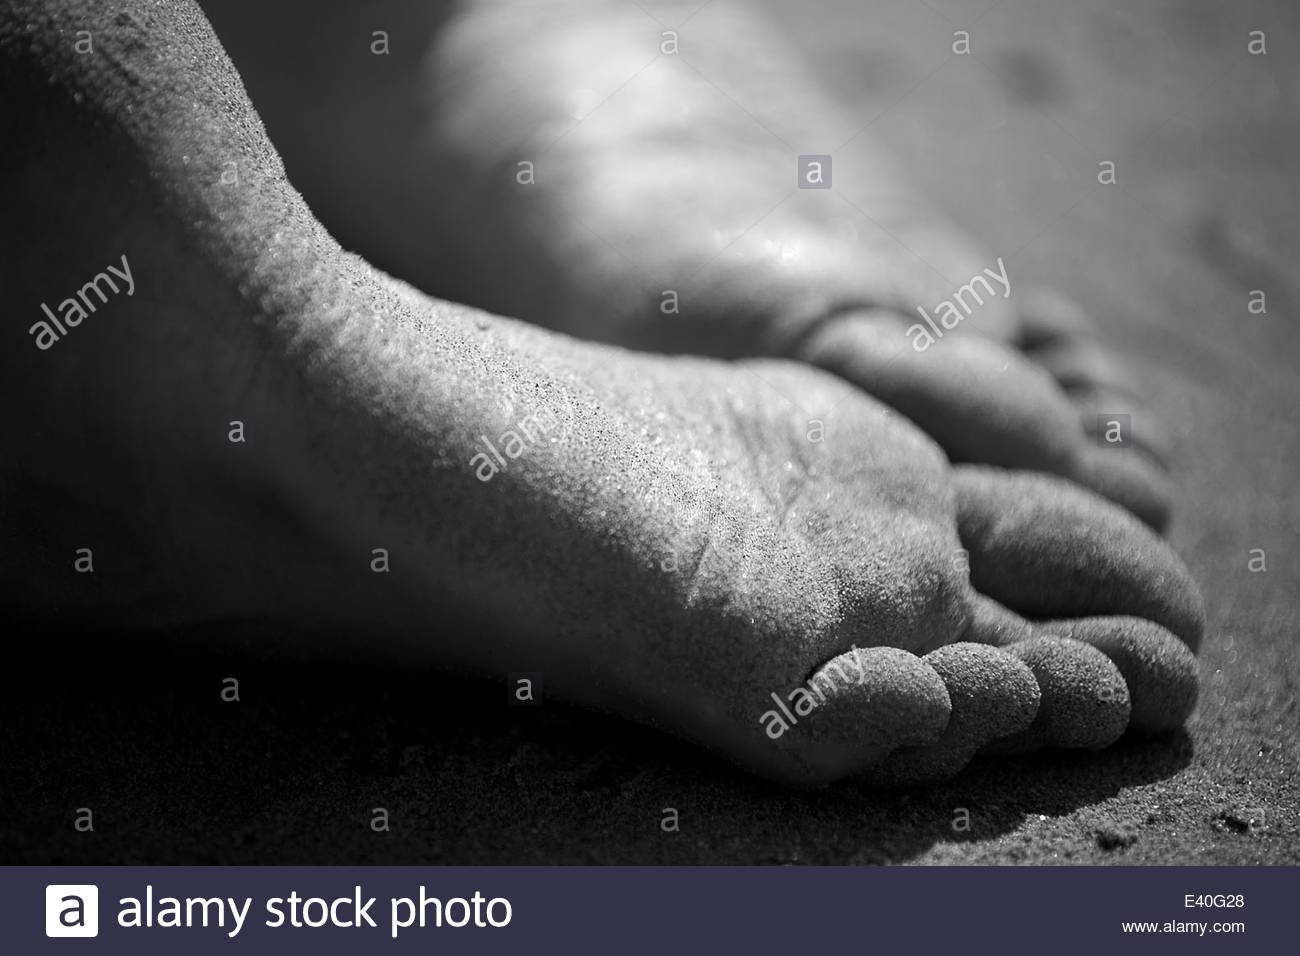 Two soles of sandy feet, close-up - Stock Image